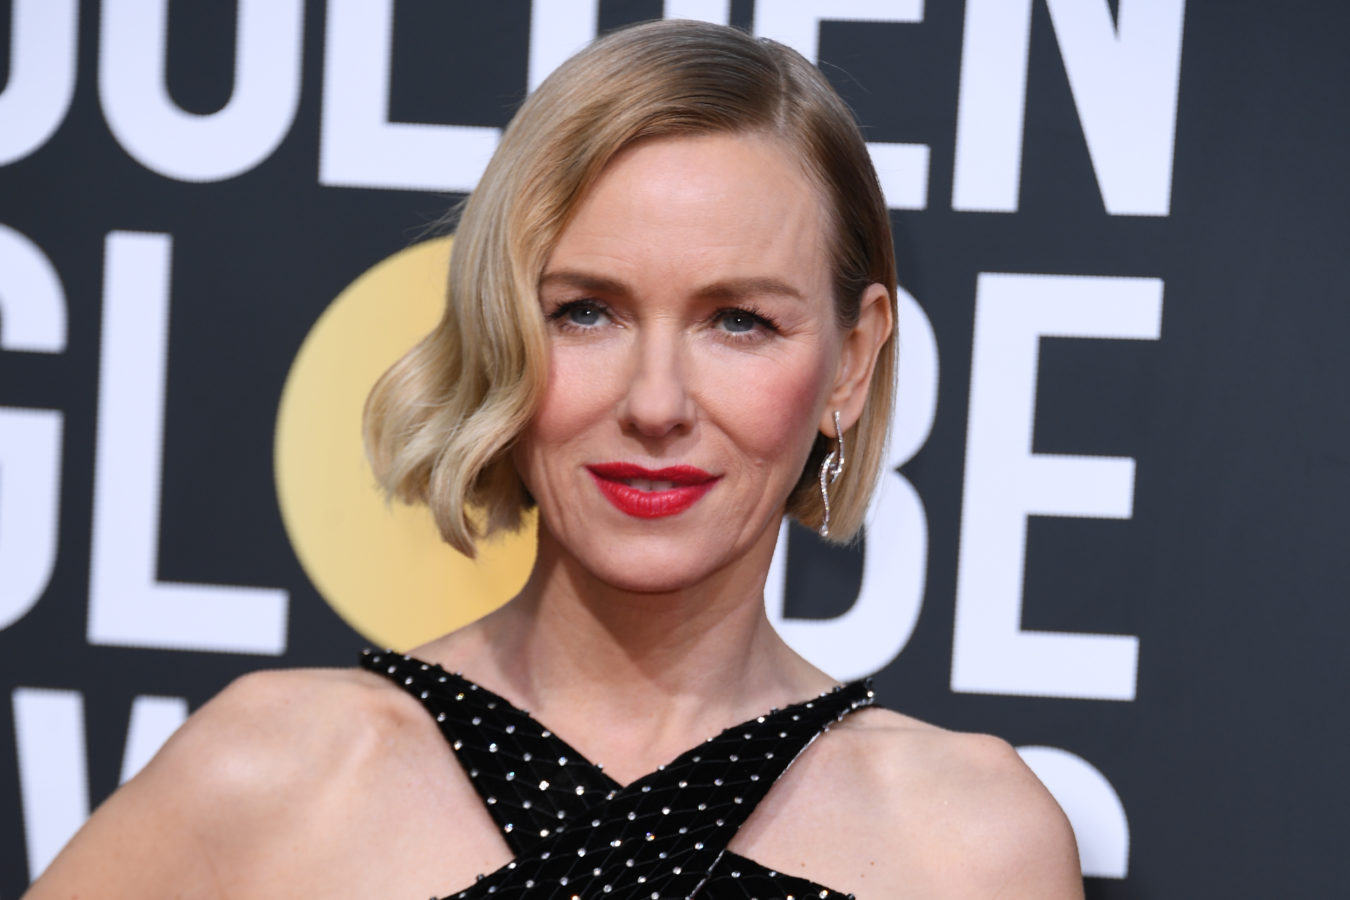 Trend Alert: is the wavy bob the go-to hairstyle for 2020?